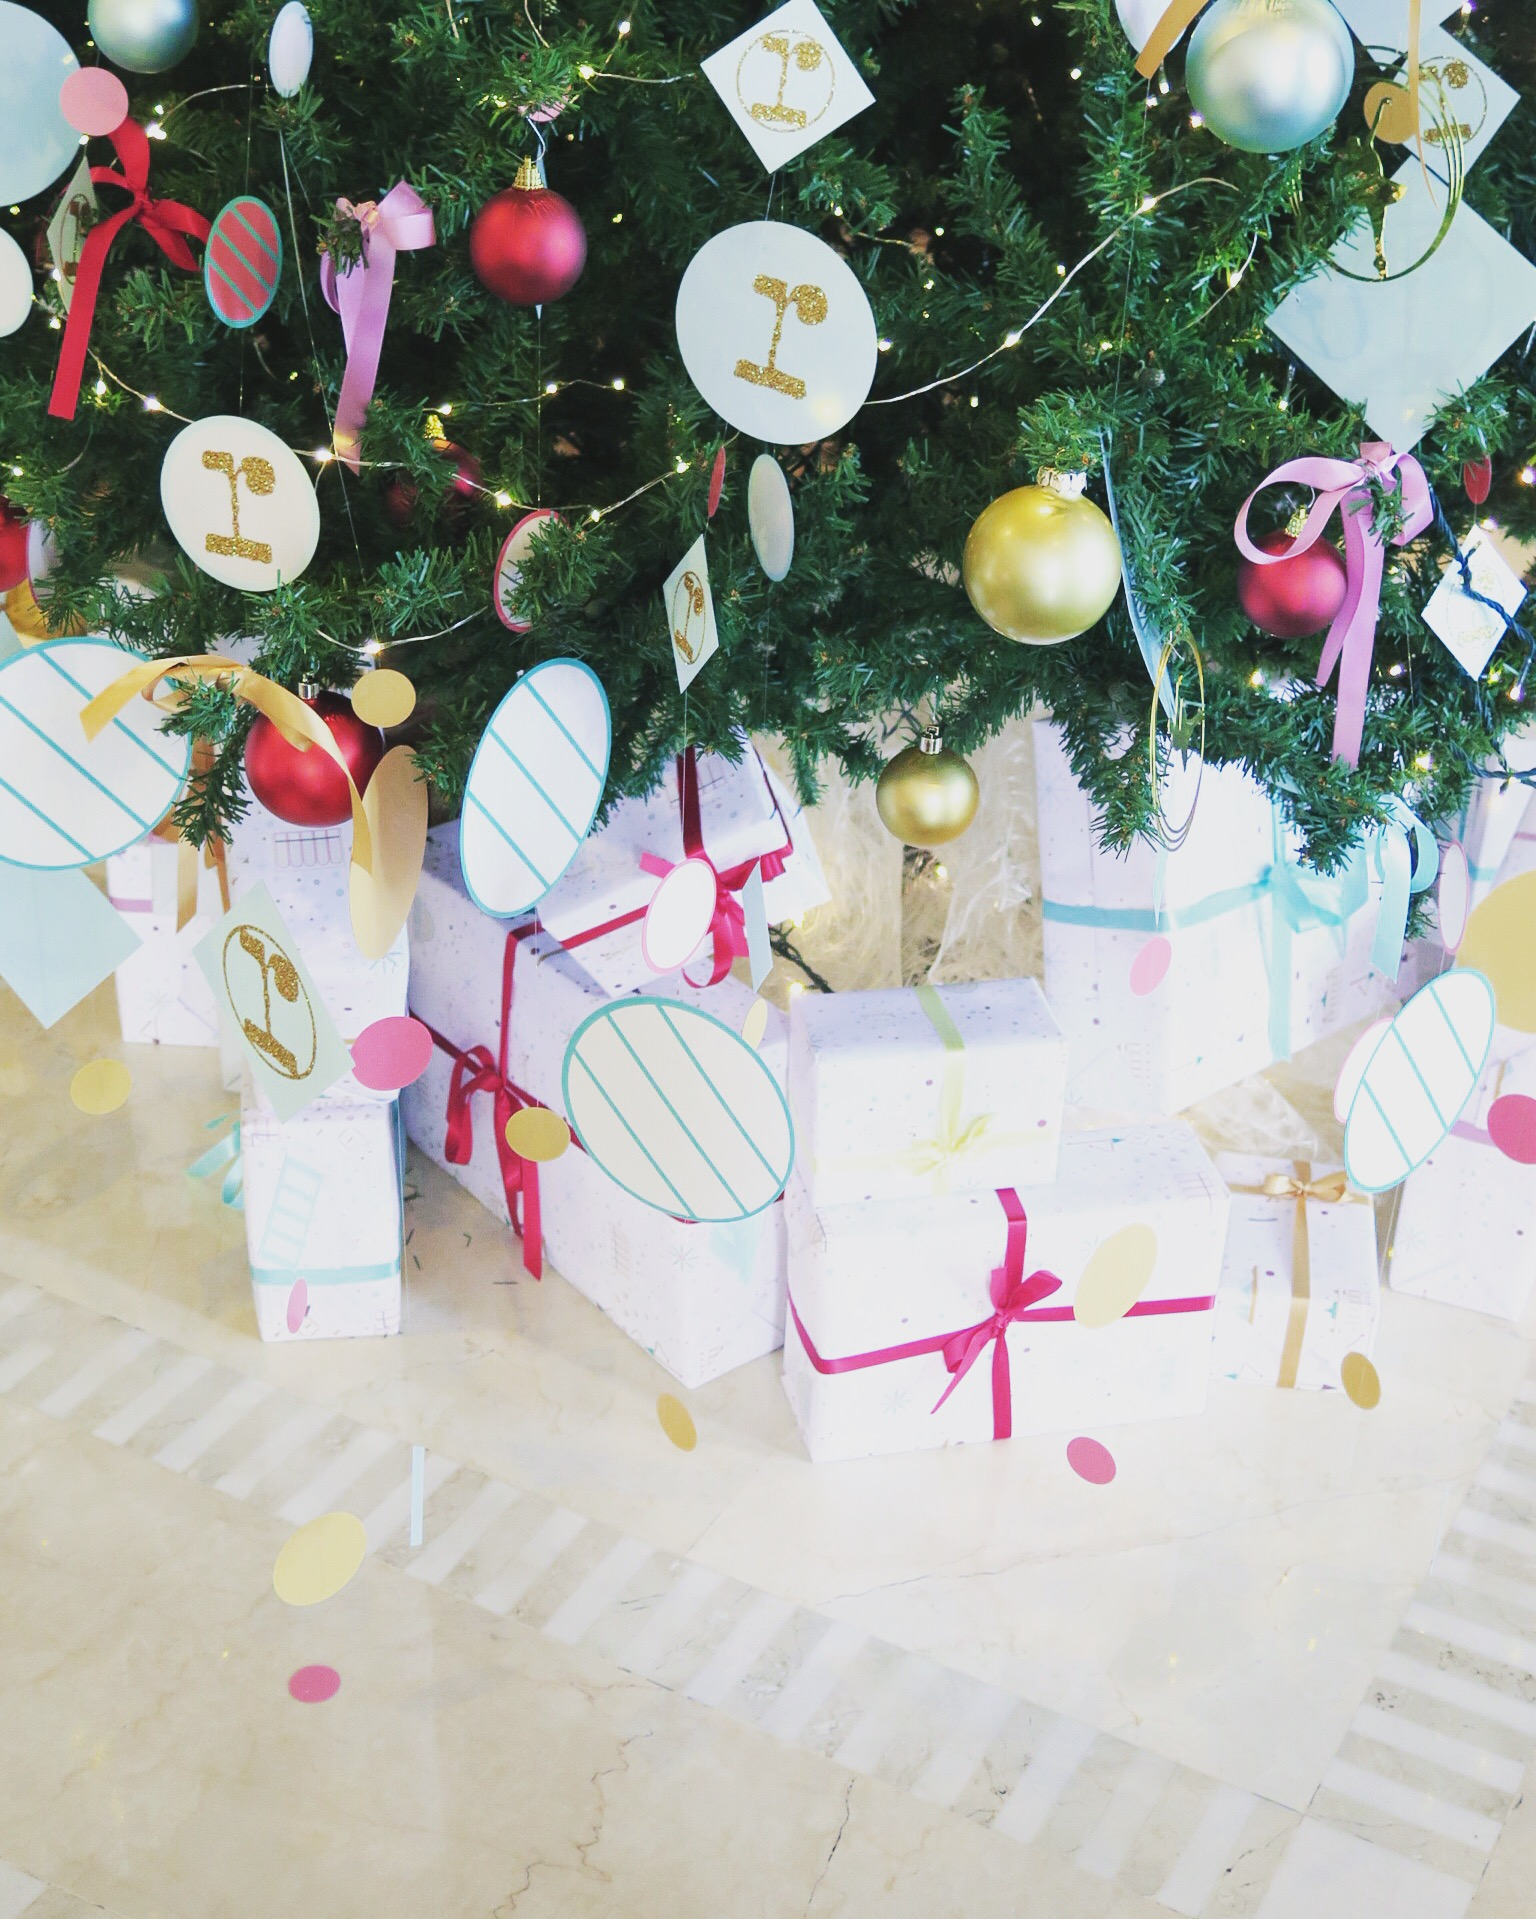 repetto-christmas-tree-hyattregencypalaismed-5